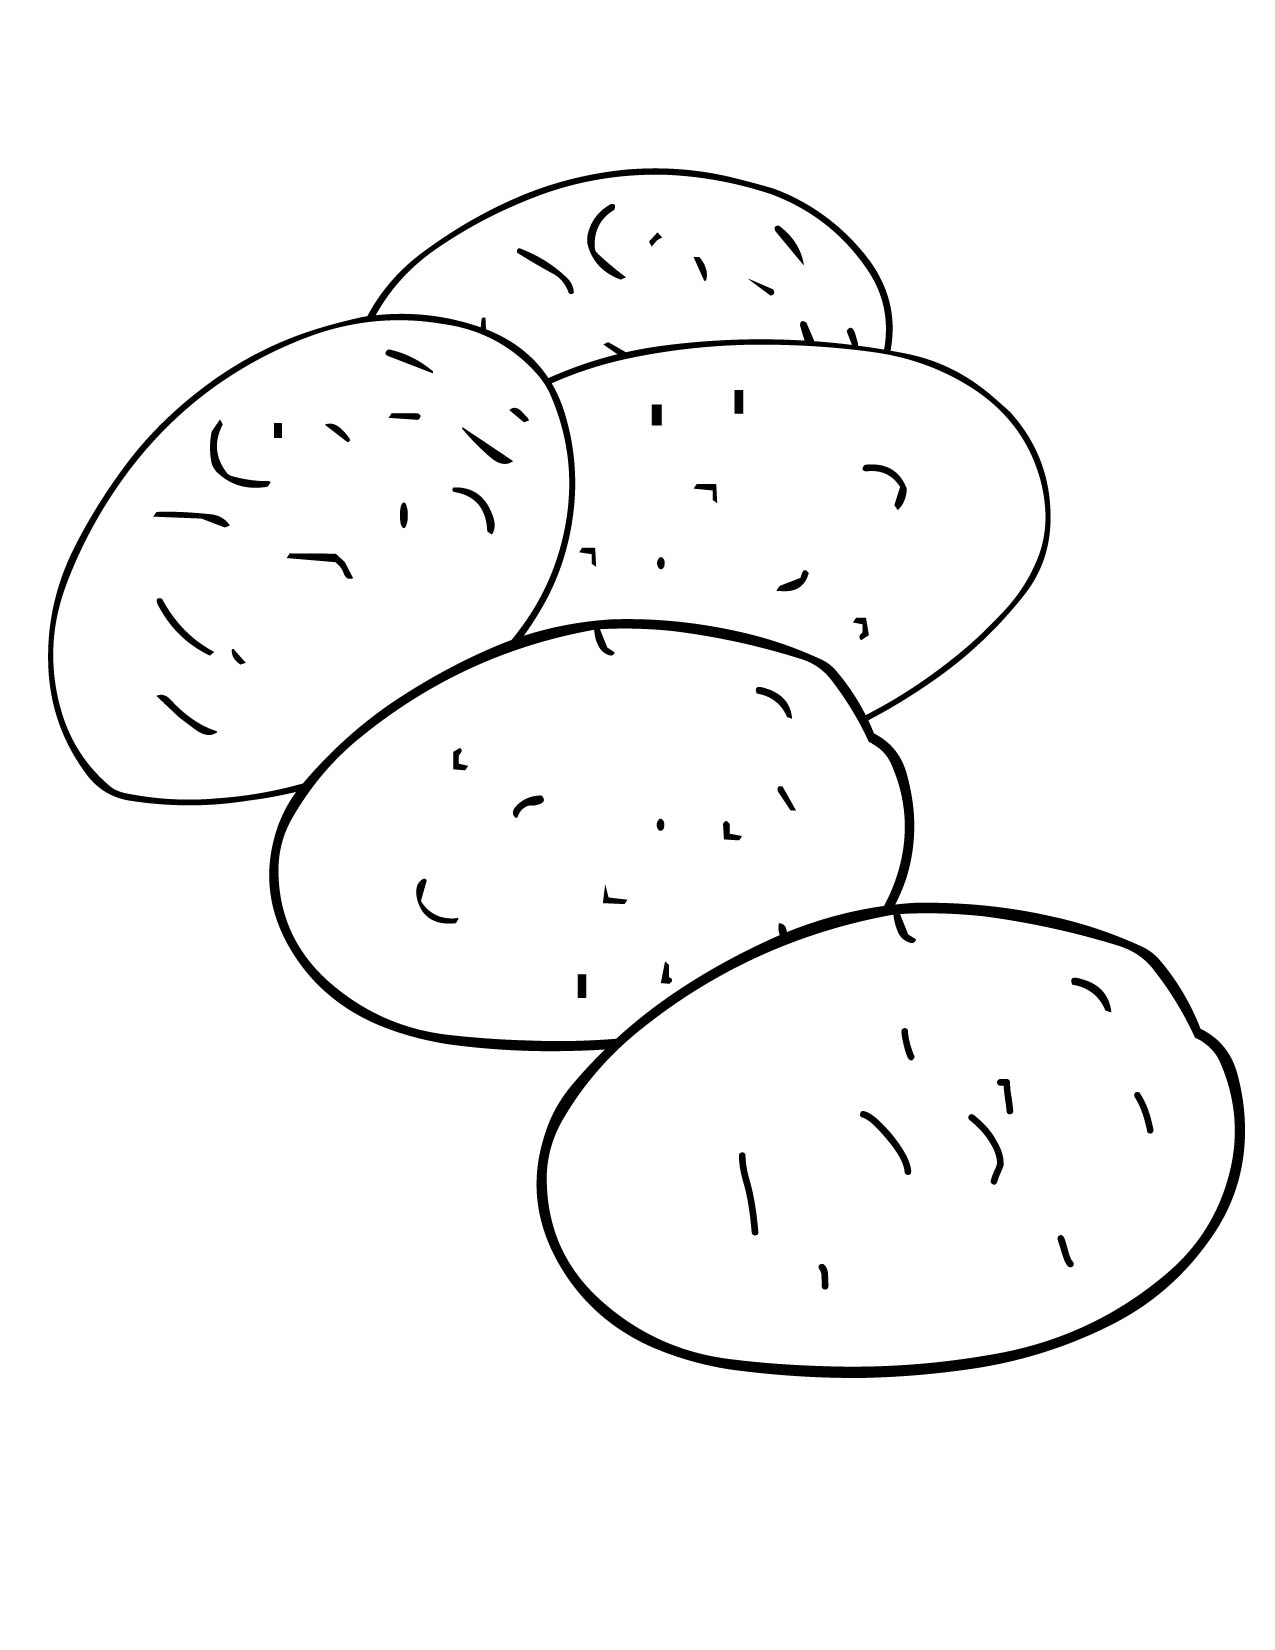 Potato clipart coloring Potato page Breadedcat potato Potato